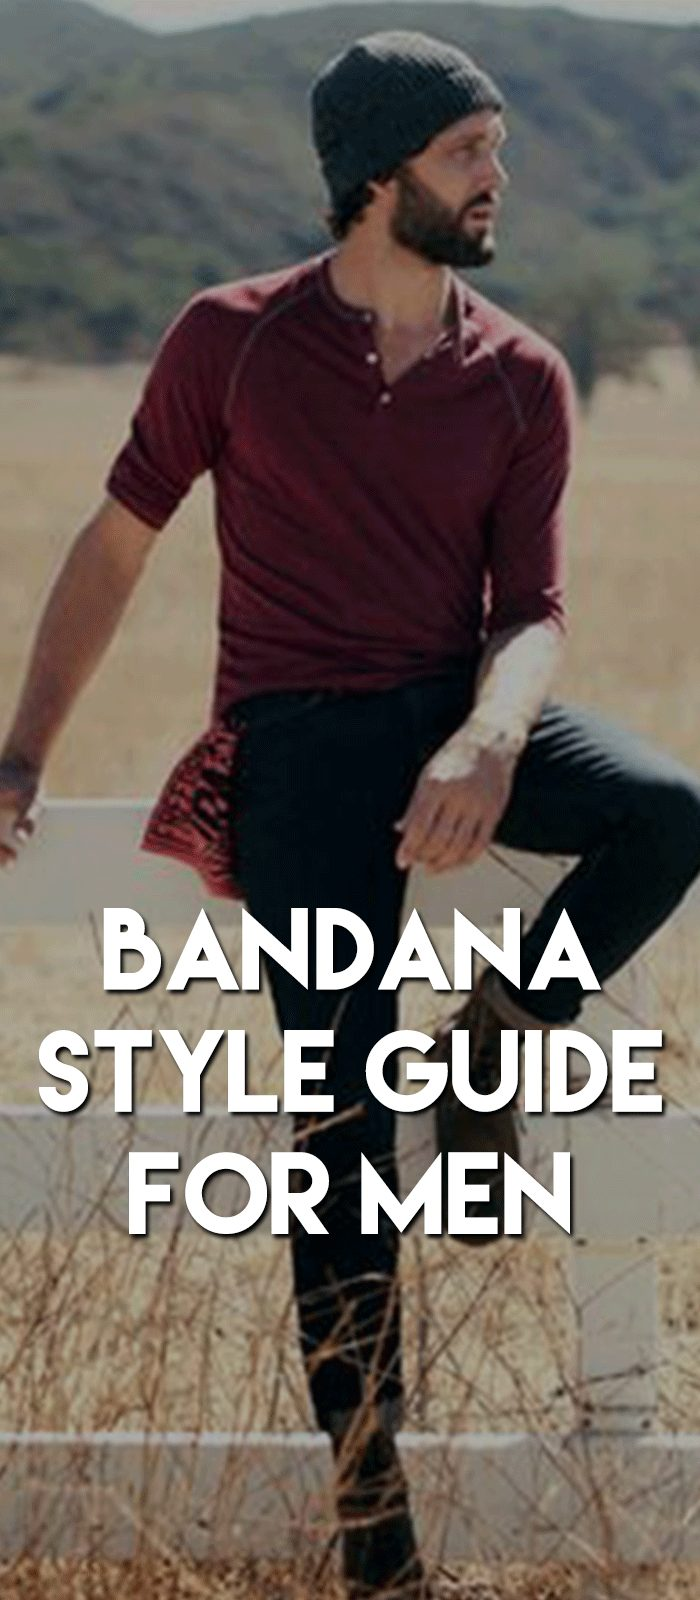 Bandana Style Guide For Men